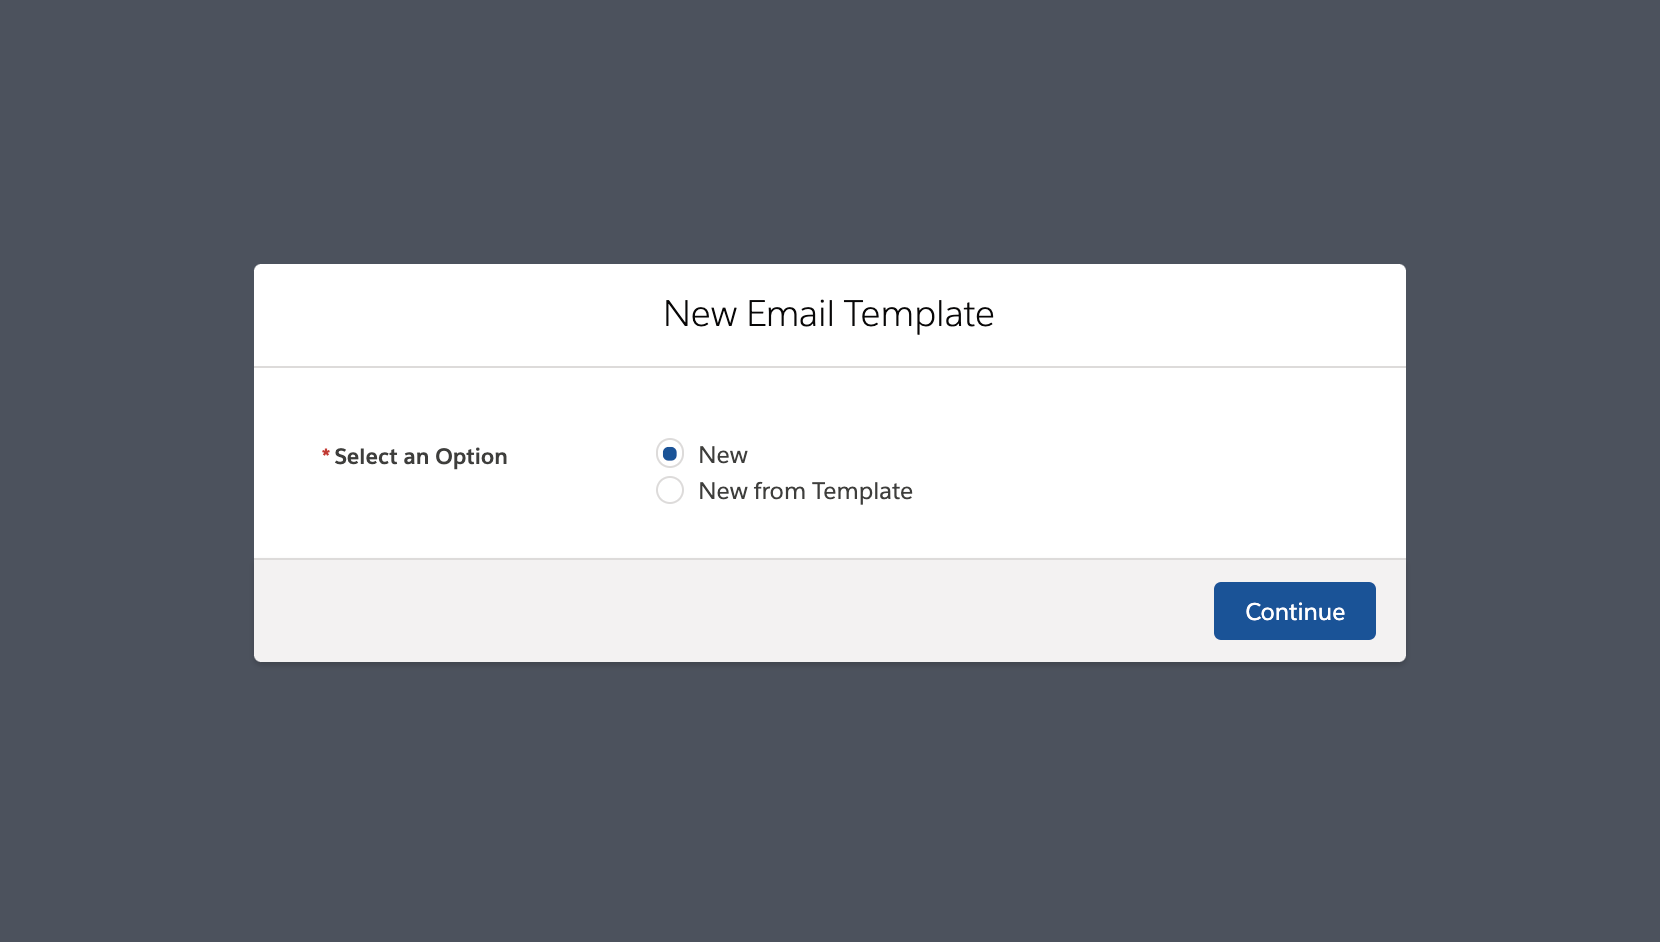 Blackthorn Events Event Management Application - Build your own personalized email for events with the Email Template Builder